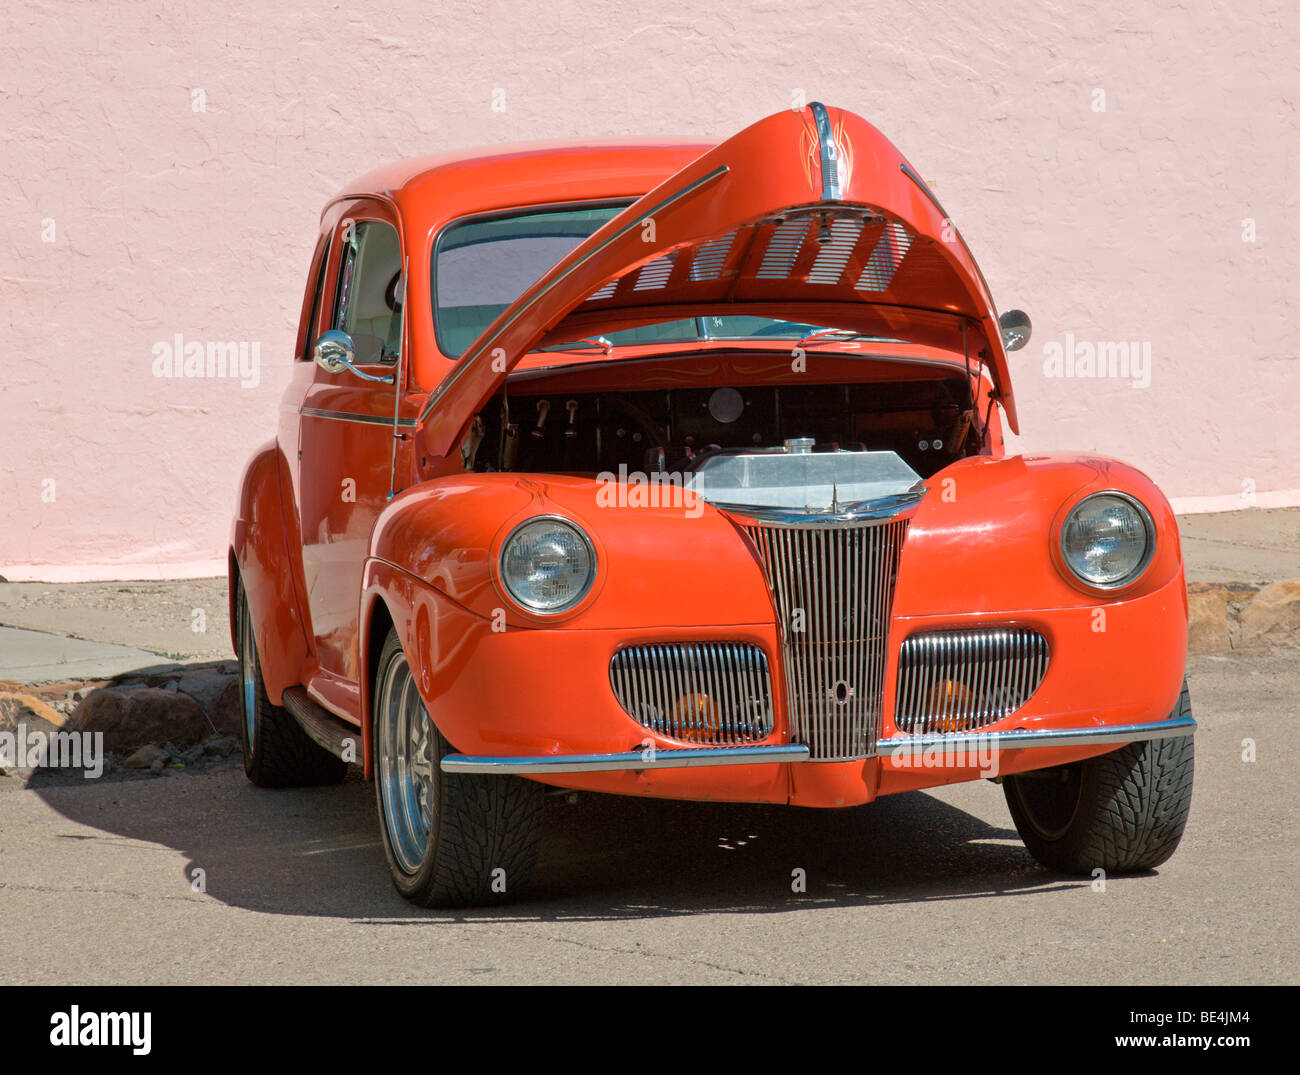 A red-hot roadster is ready for inspection at the Street Festival in Carrizozo, New Mexico. - Stock Image